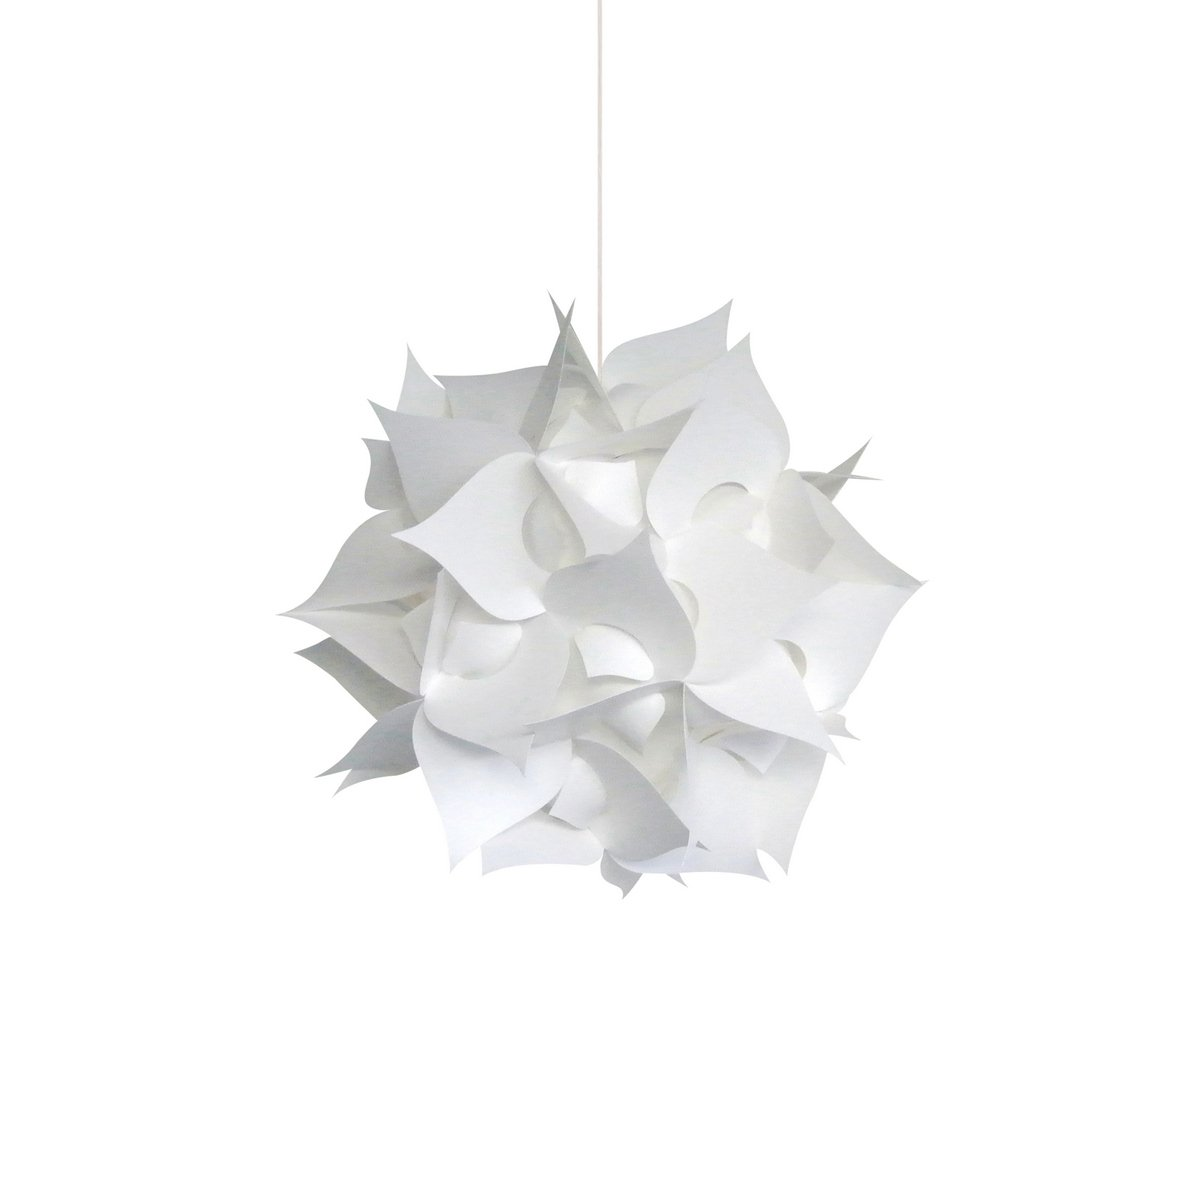 Akari Lanterns Small Spades 12 wide , Warm White Glow, Modern Unique Ceiling Hanging Light Fixtures Swag Plug in or Hardwire as Pendant Lamp Shade – Spiral bulb included, Easy to install